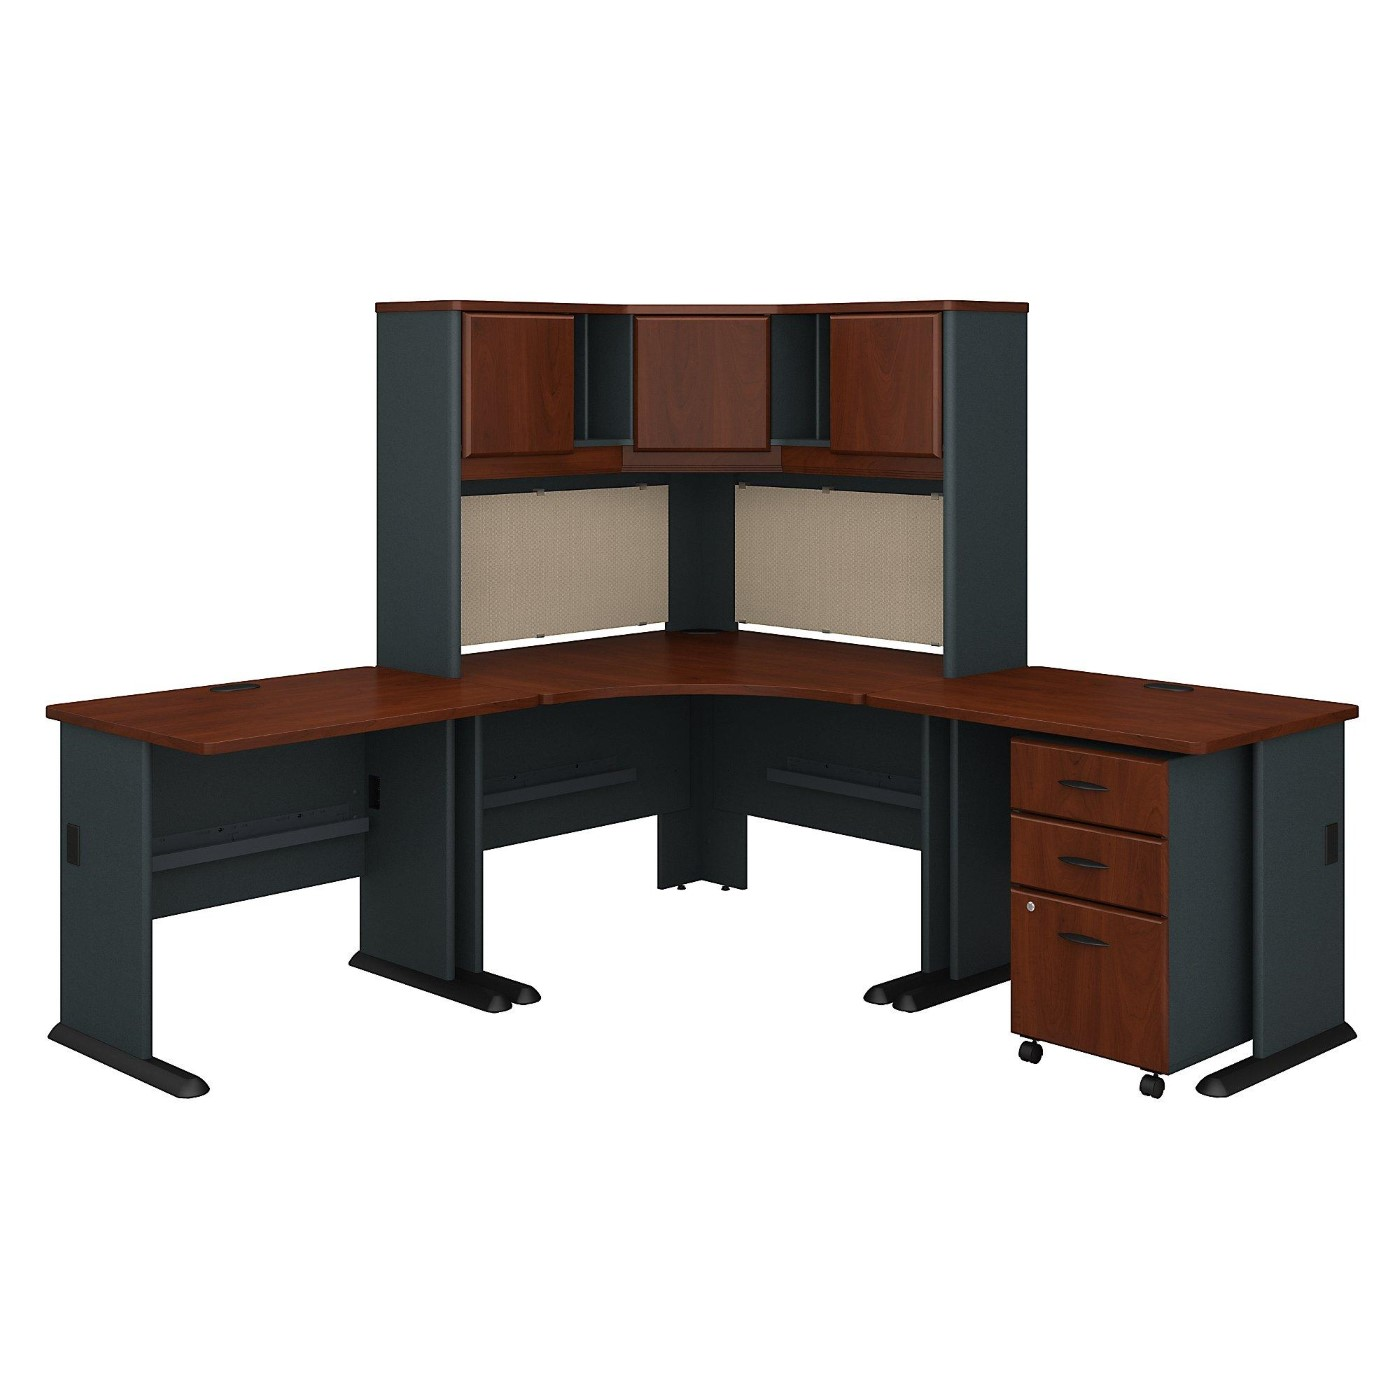 BUSH BUSINESS FURNITURE SERIES A 84W X 84D CORNER DESK WITH HUTCH AND MOBILE FILE CABINET. ADD TO CART TO GET FREE SHIPPING: /font>